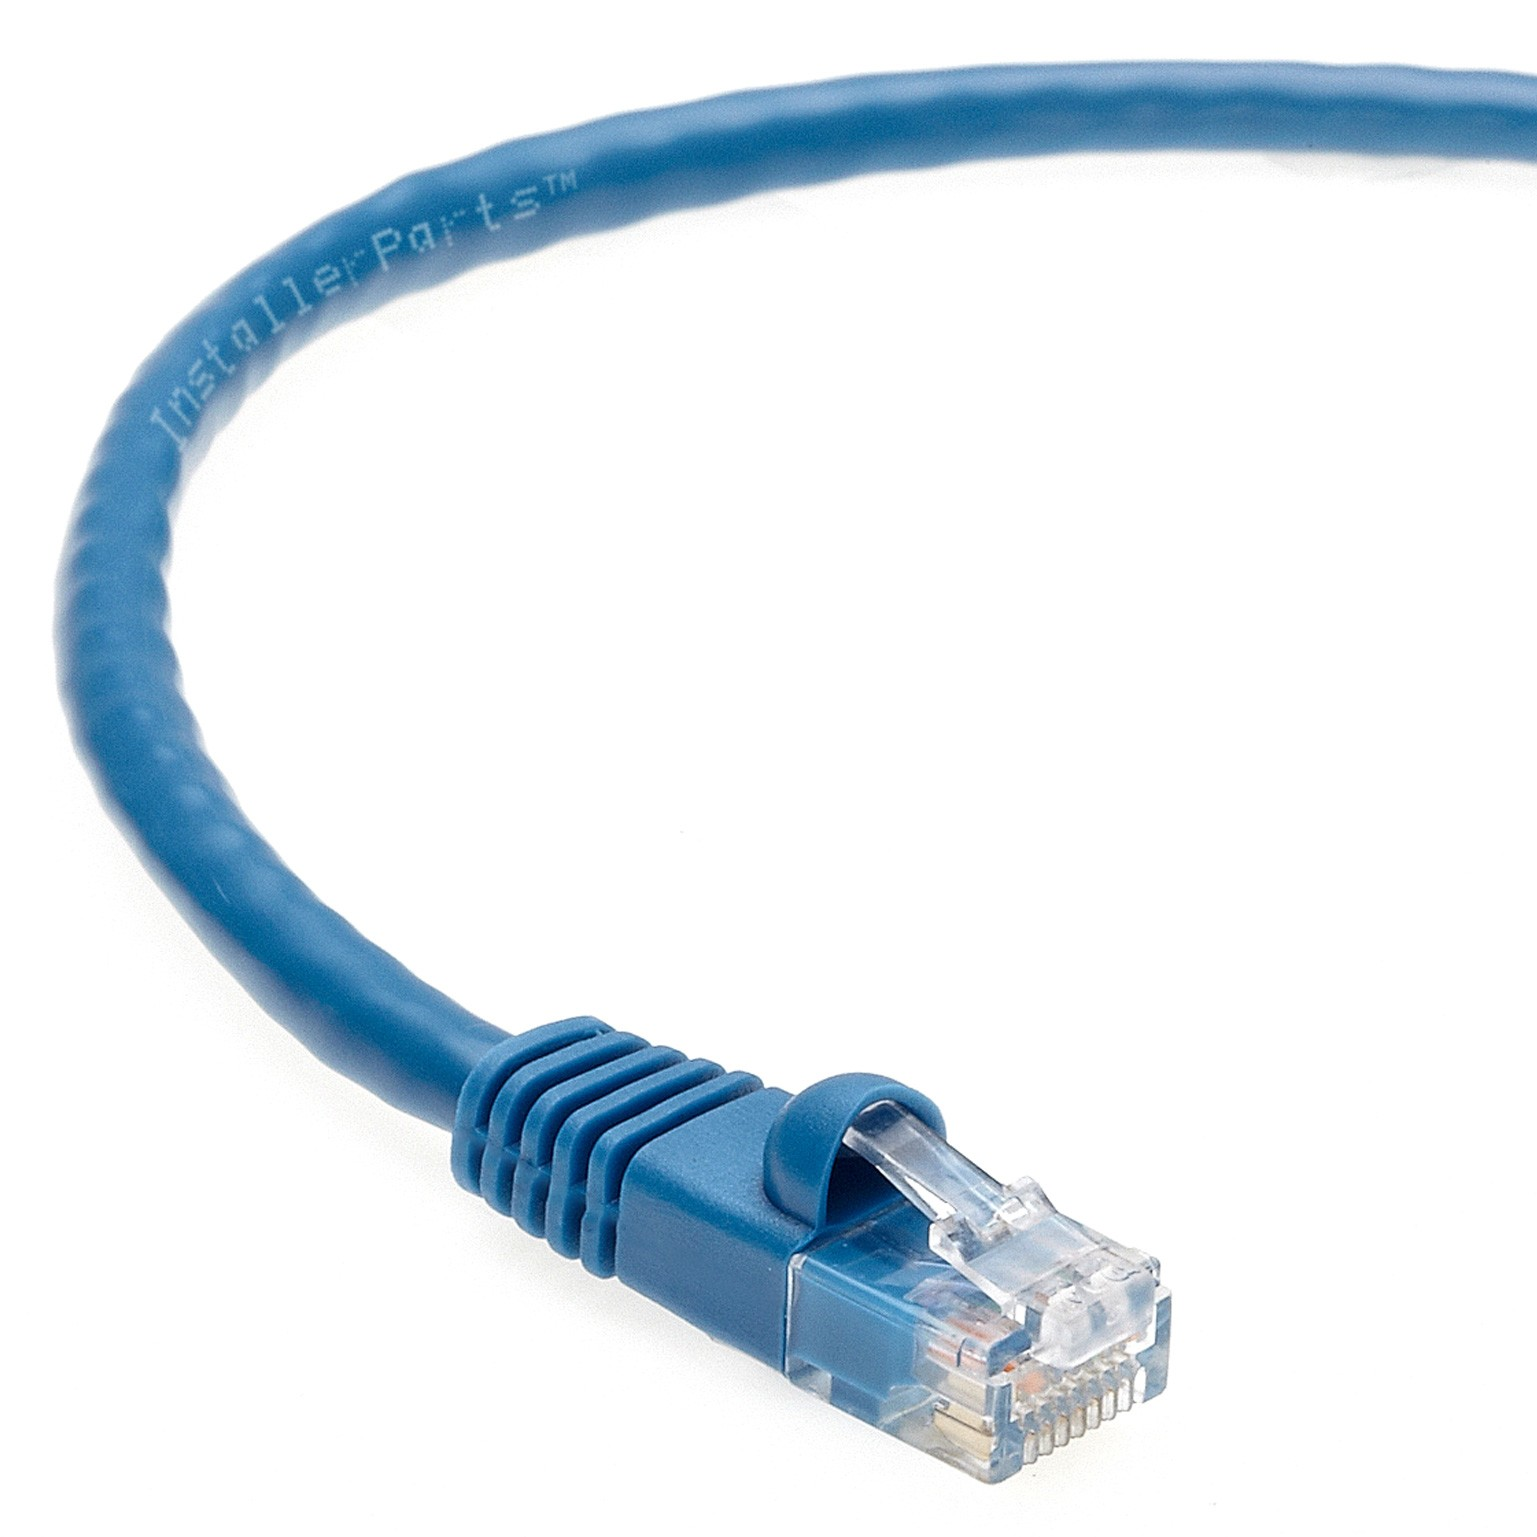 hight resolution of 40 ft cat 6 molded snagless patch cable blue professional series 50 micron gold plated rj45 connectors ethernet data network